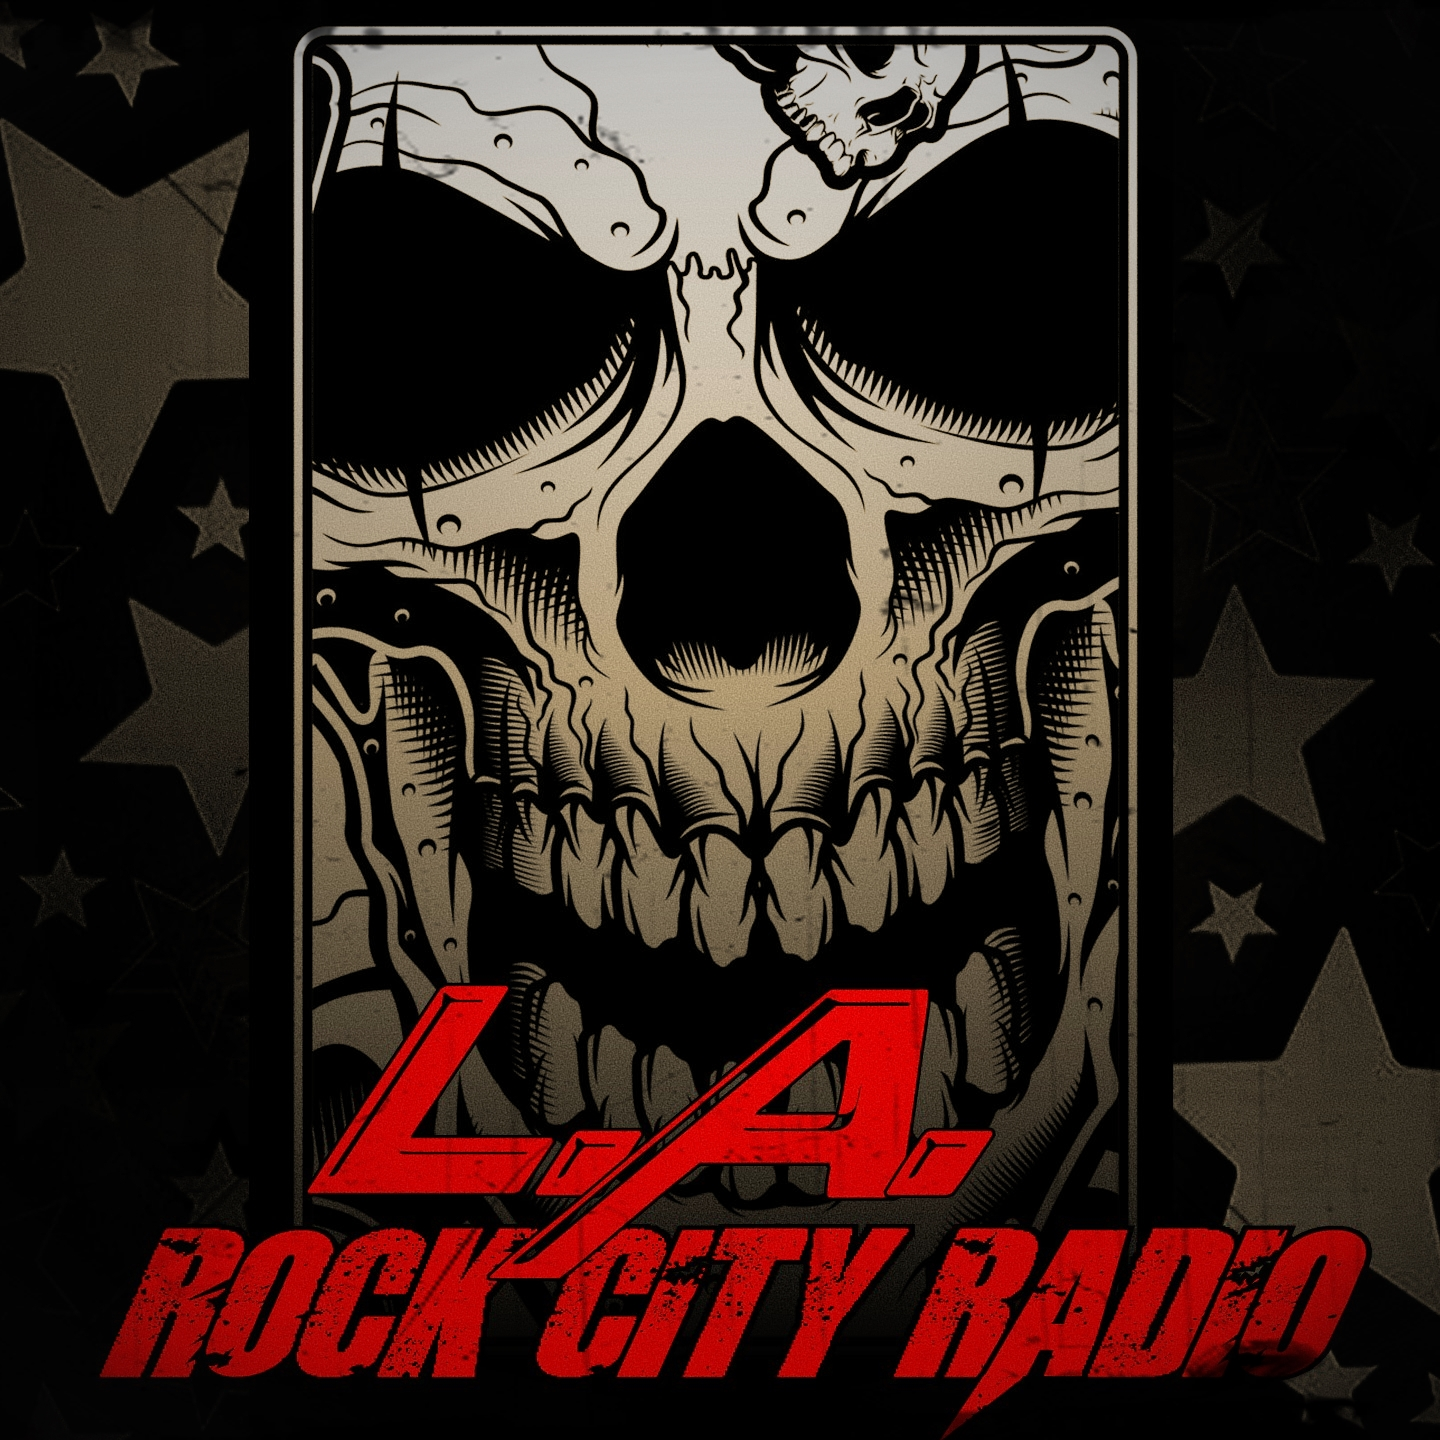 Art for L.A. Rock City Radio Station ID 4 by L.A. Rock City Radio